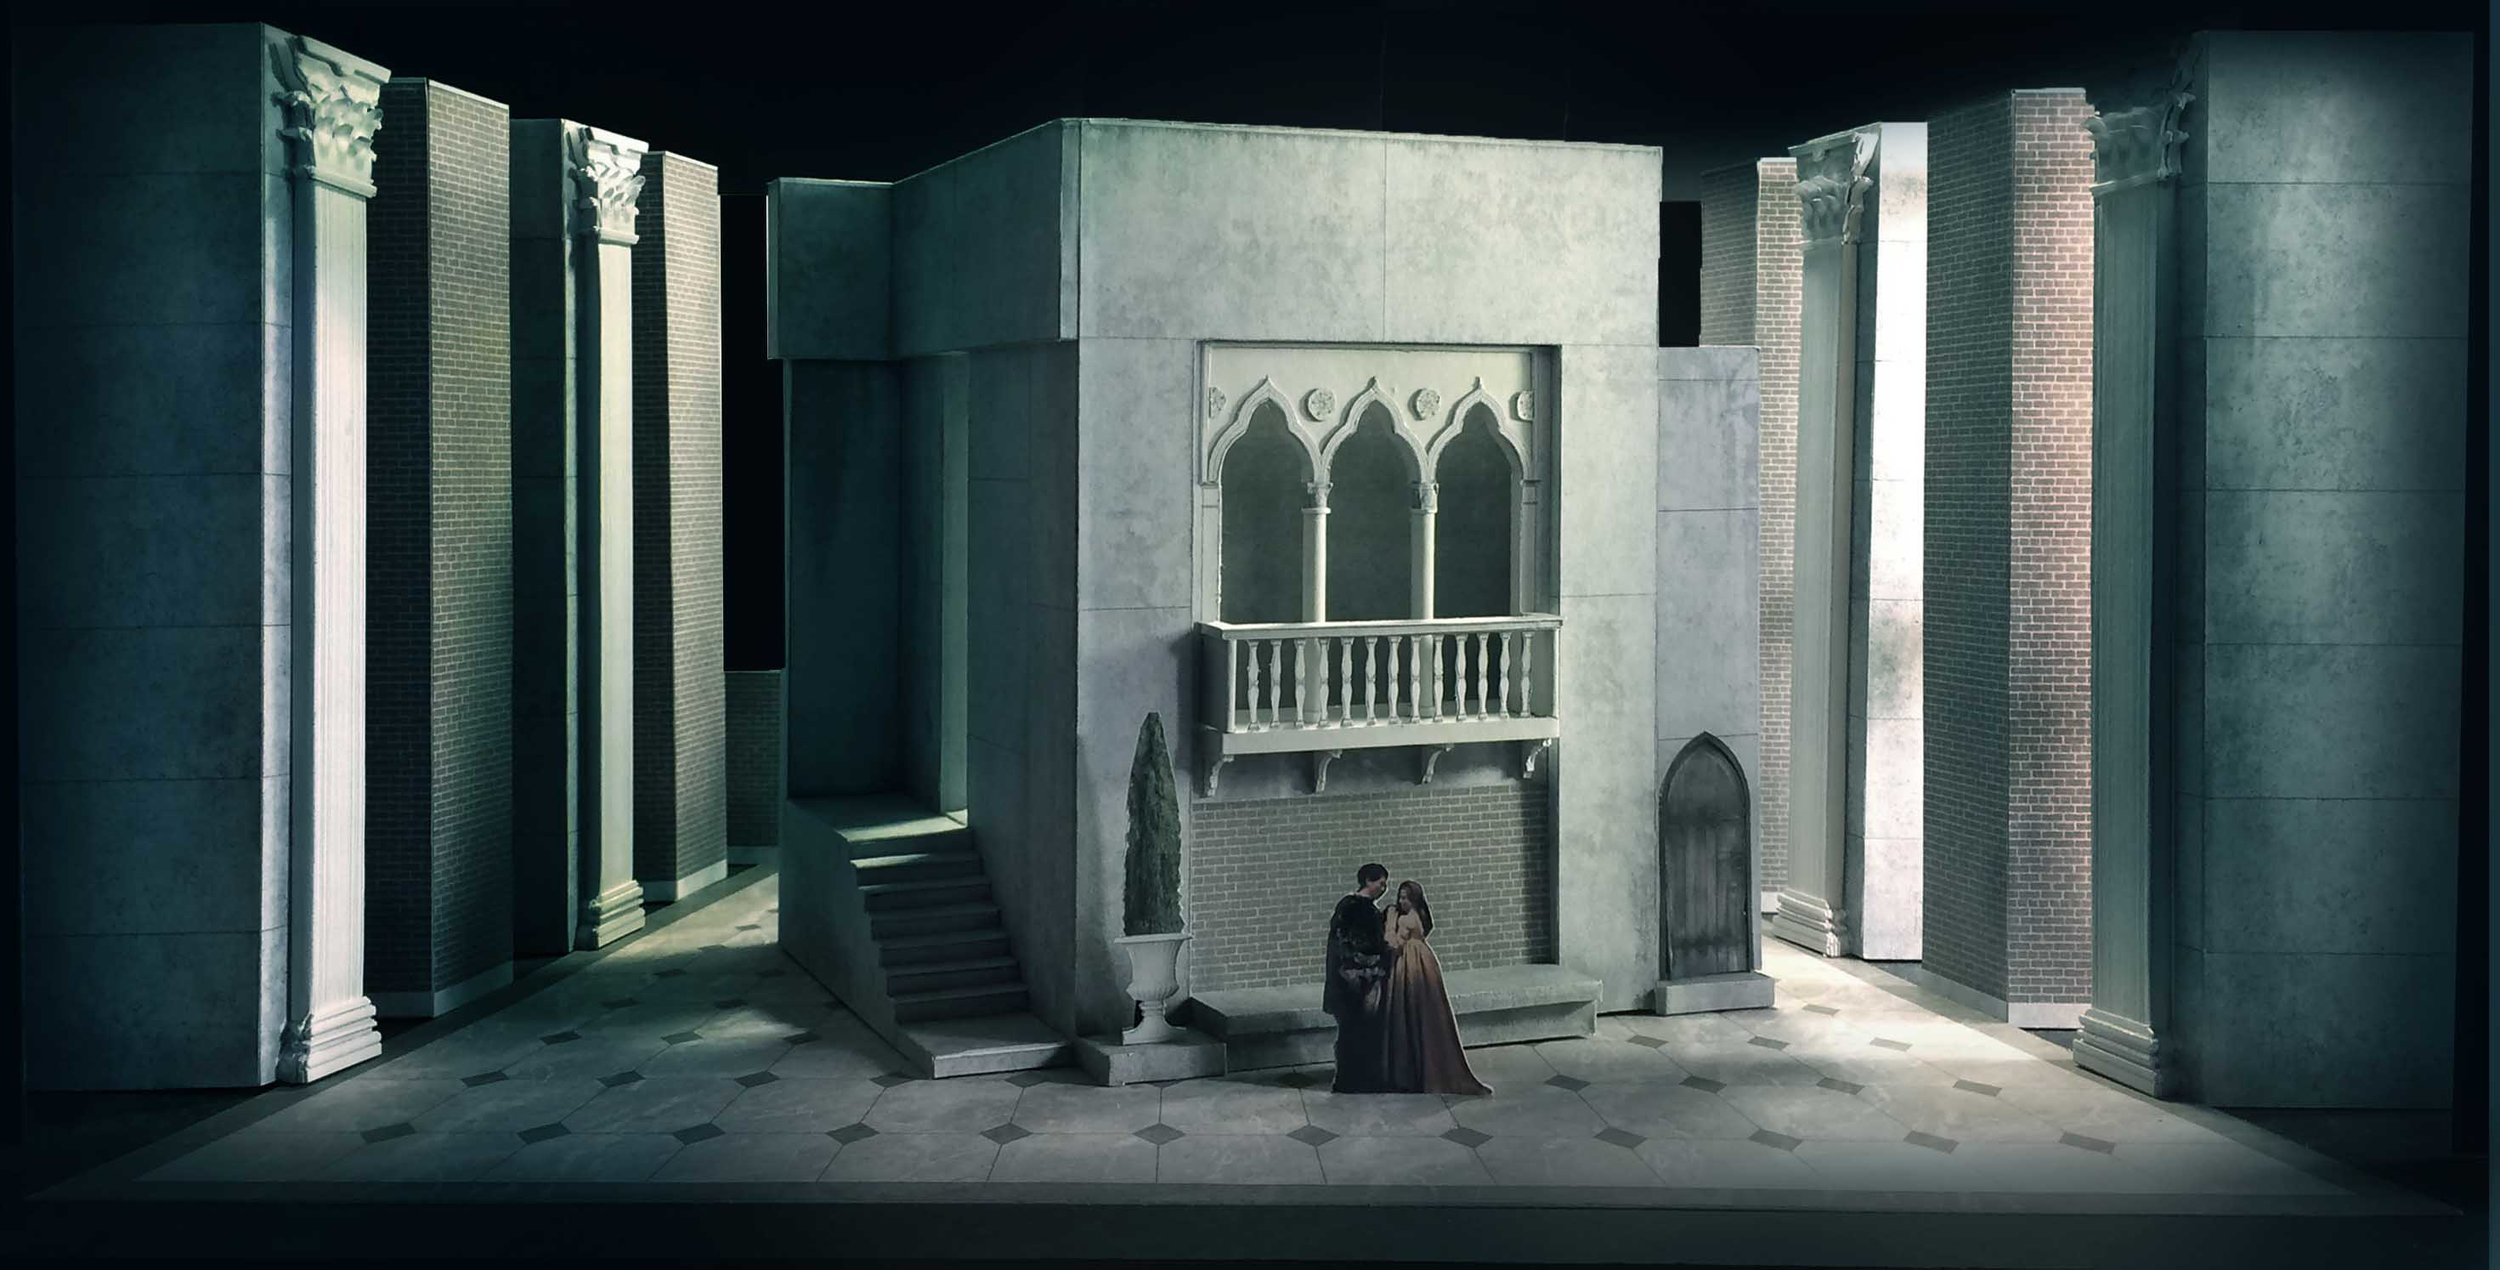 004a  act 1 sc. 2  Rigoletto 's House.jpg